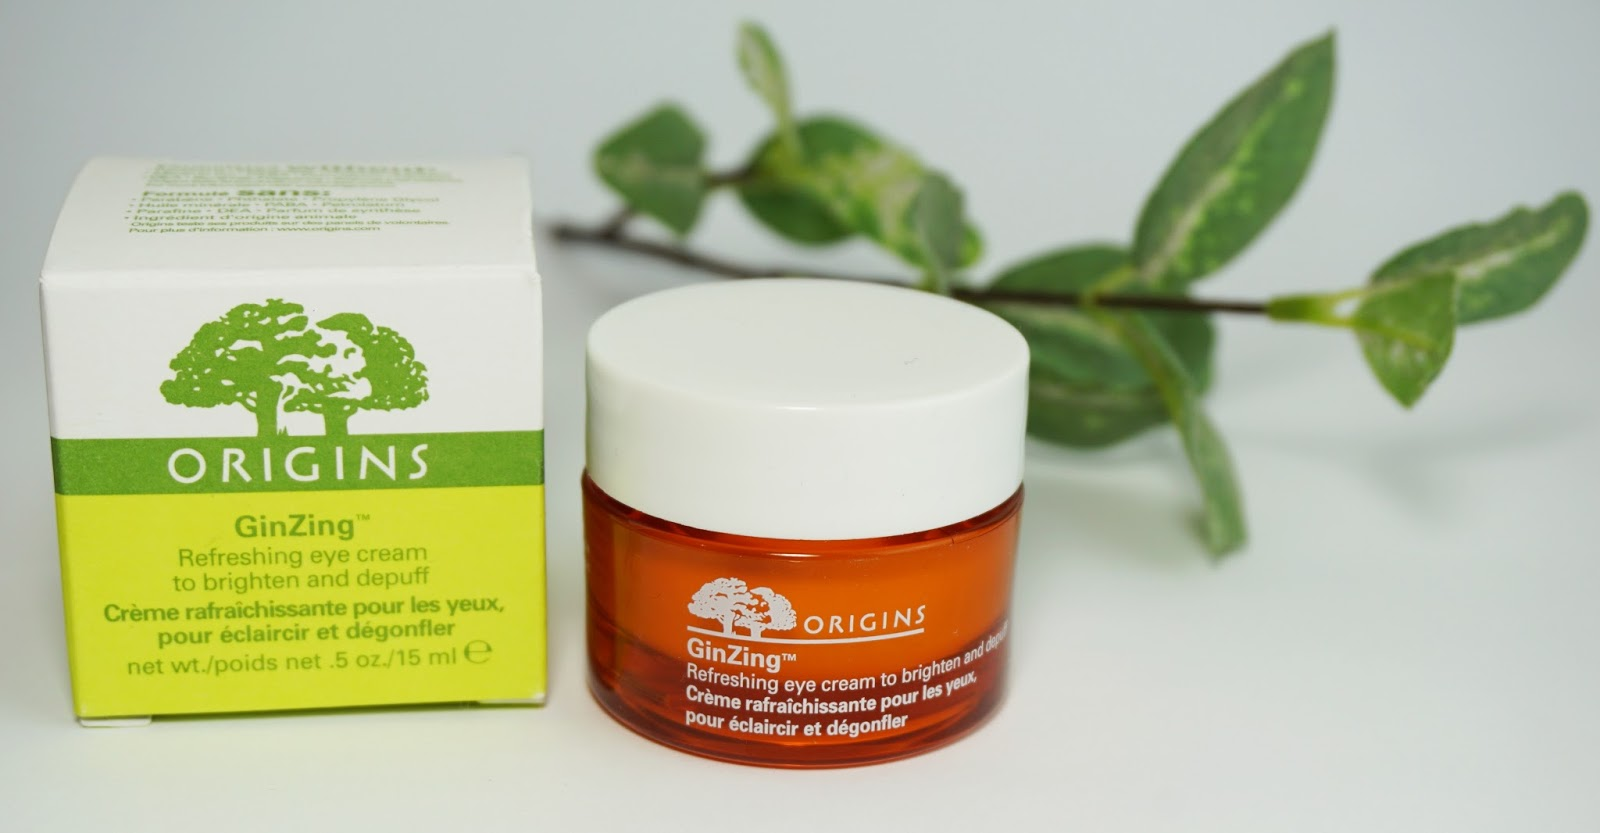 Origins - GinZing Refreshing Eye Cream (Augencreme)